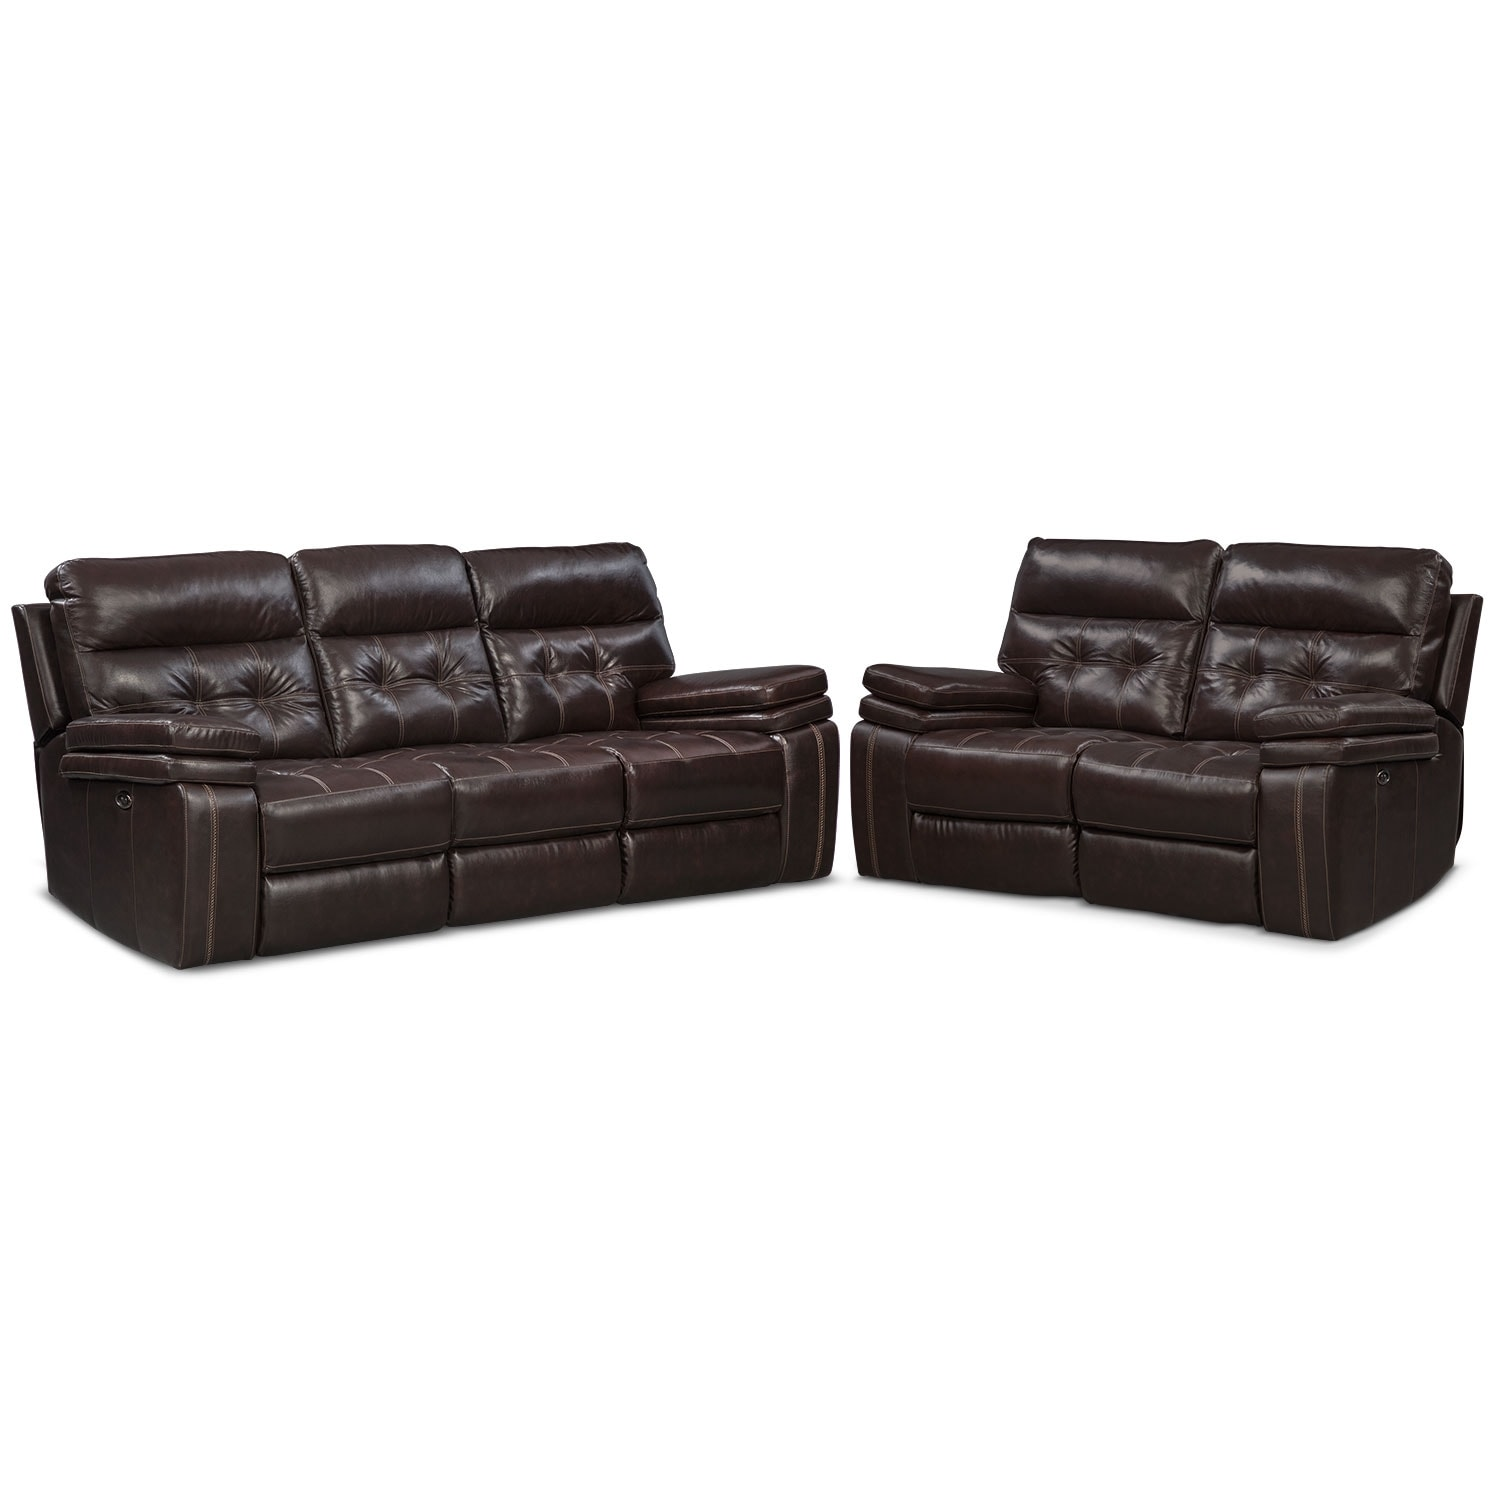 Brisco Power Reclining Sofa And Reclining Loveseat Set Brown Value City Furniture